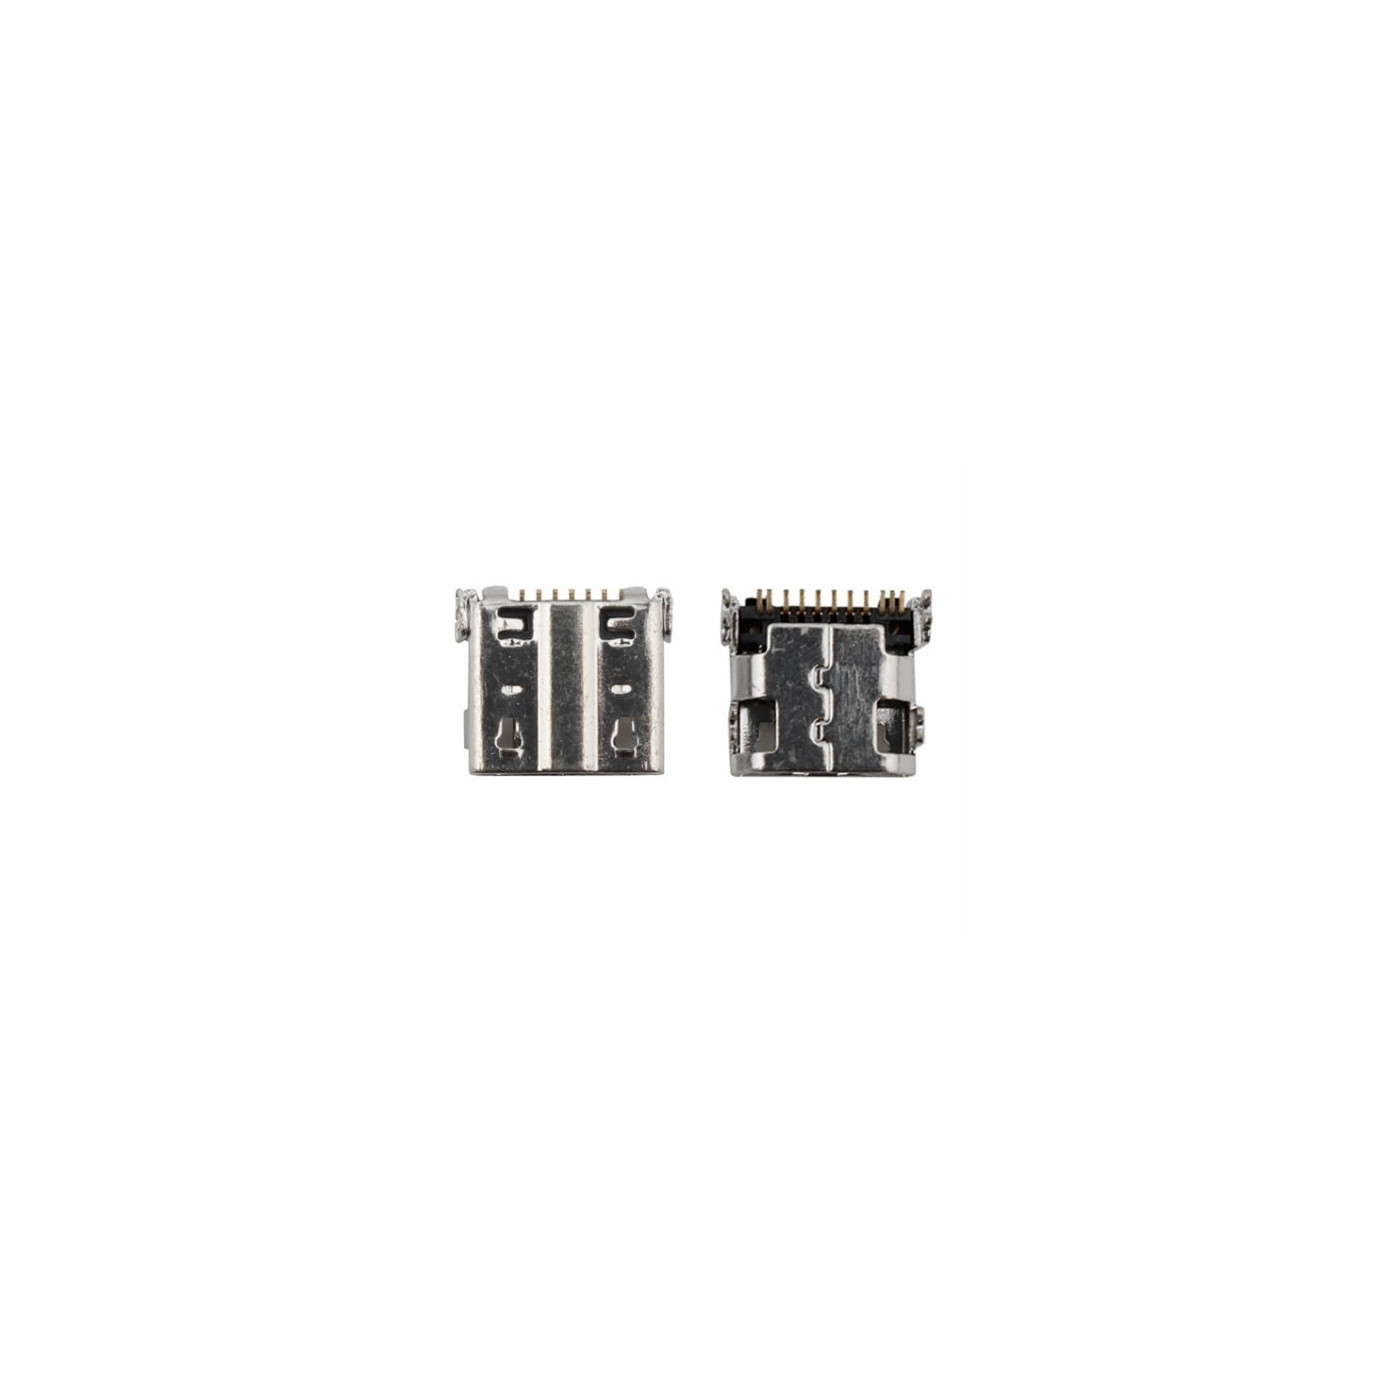 Charging Connector for Galaxy s4 i9500 i9505 Micro USB